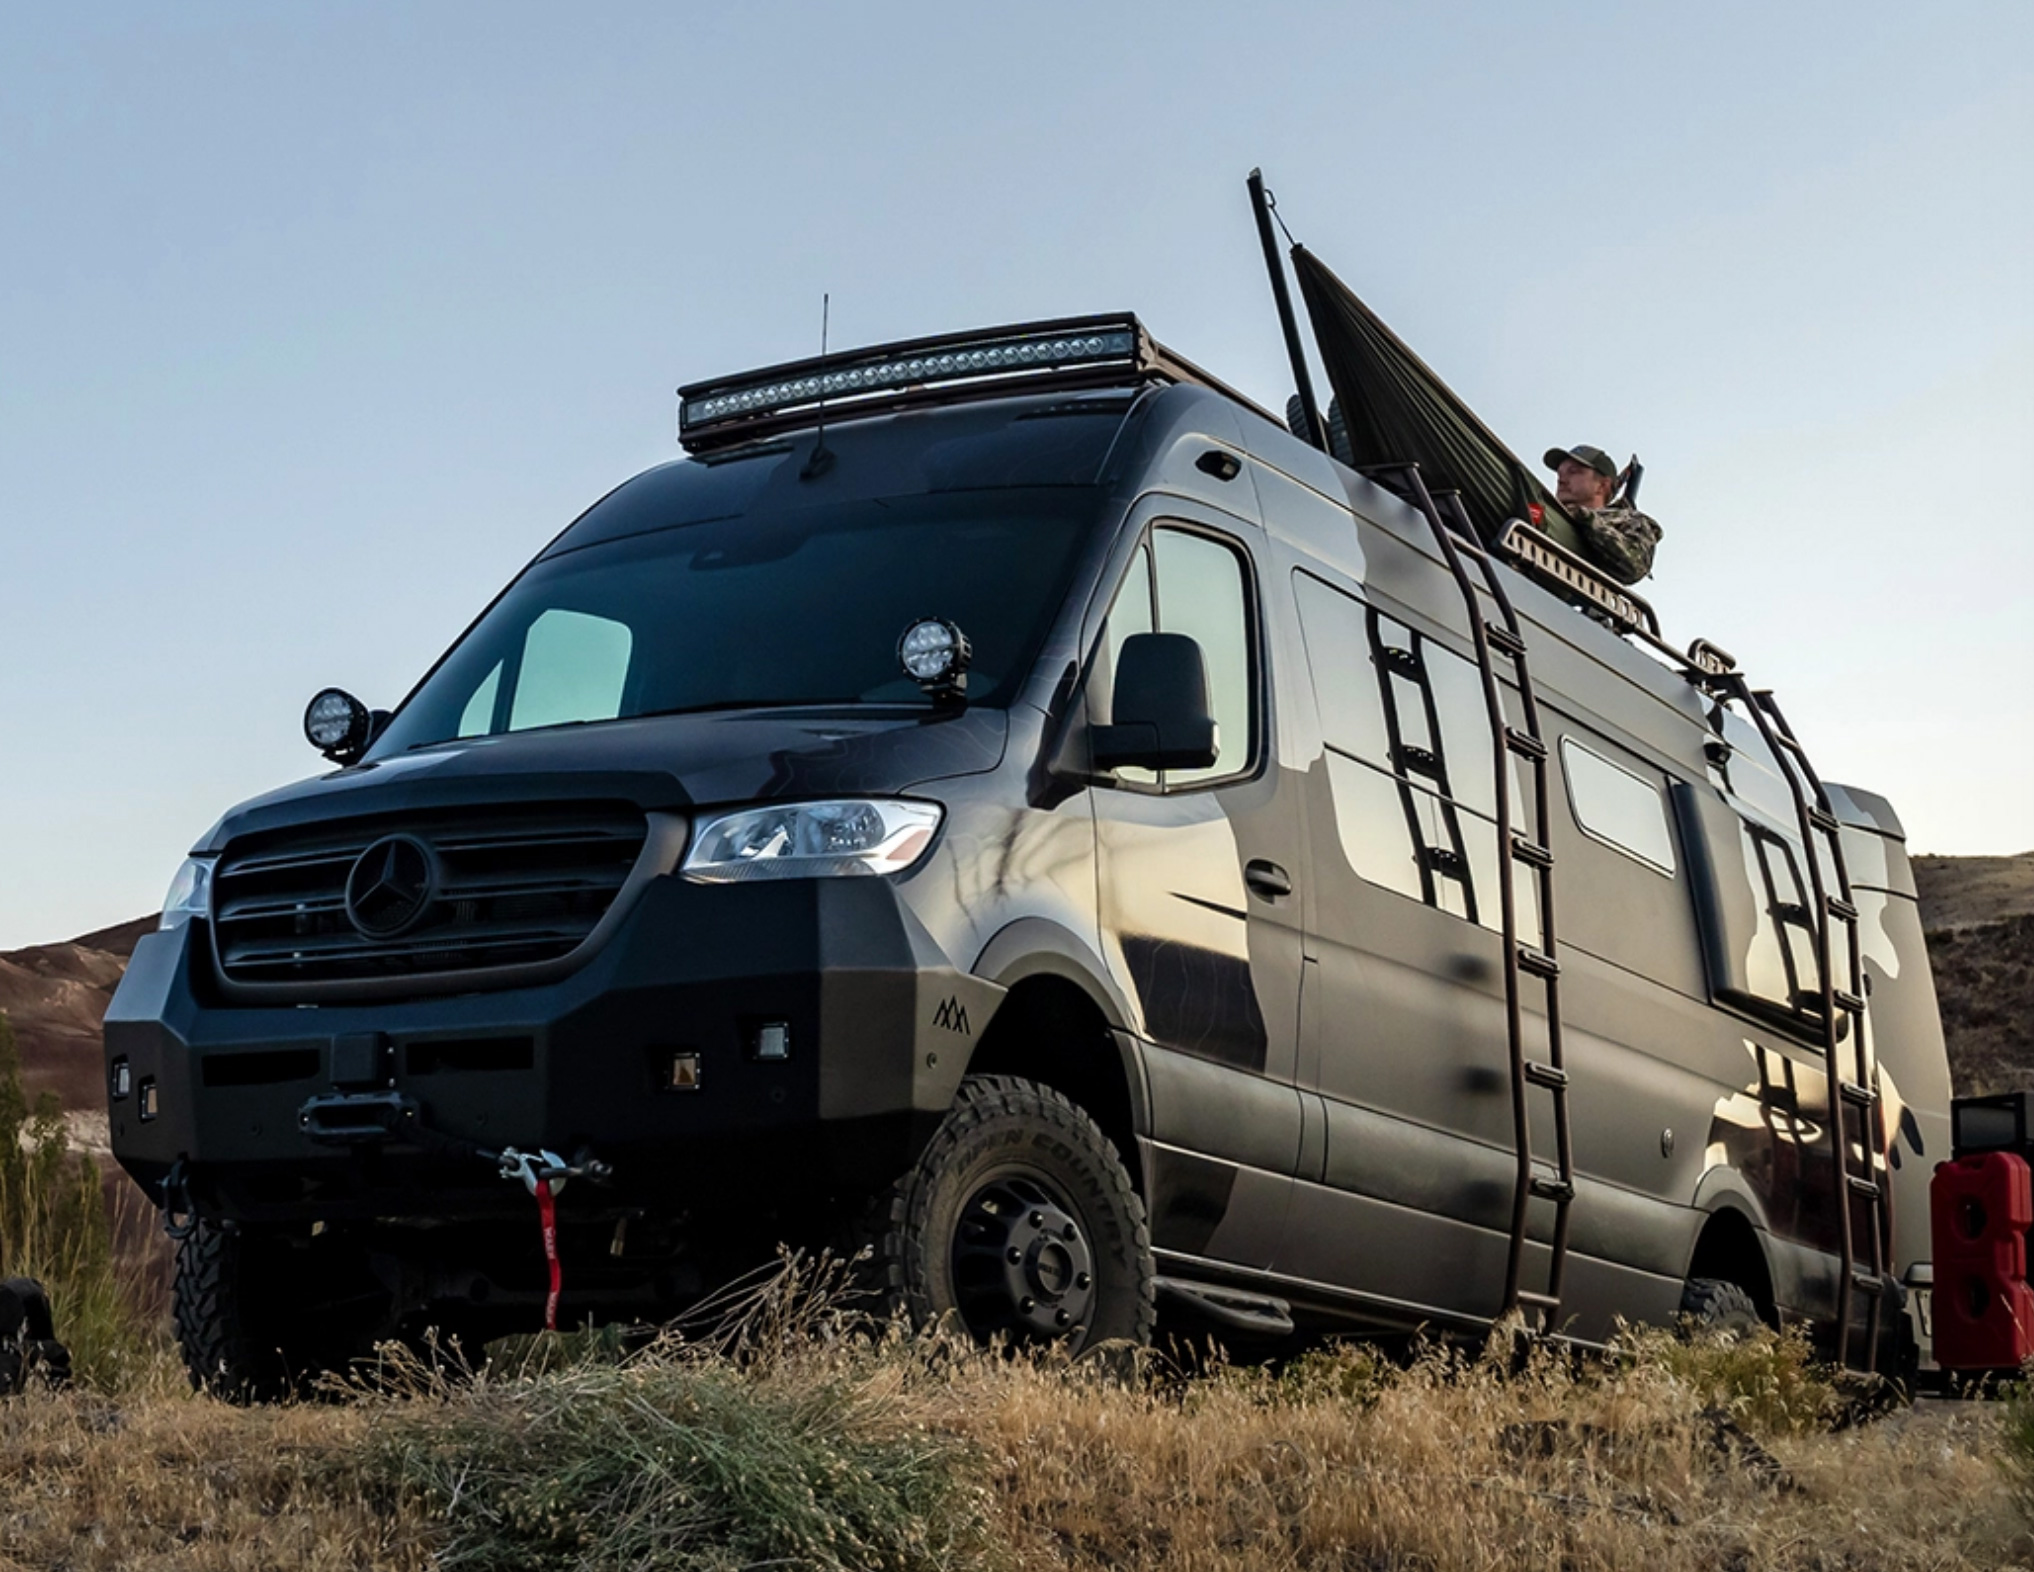 Launch into Hunting Season with a Savage Sprinter from Outside Van at werd.com